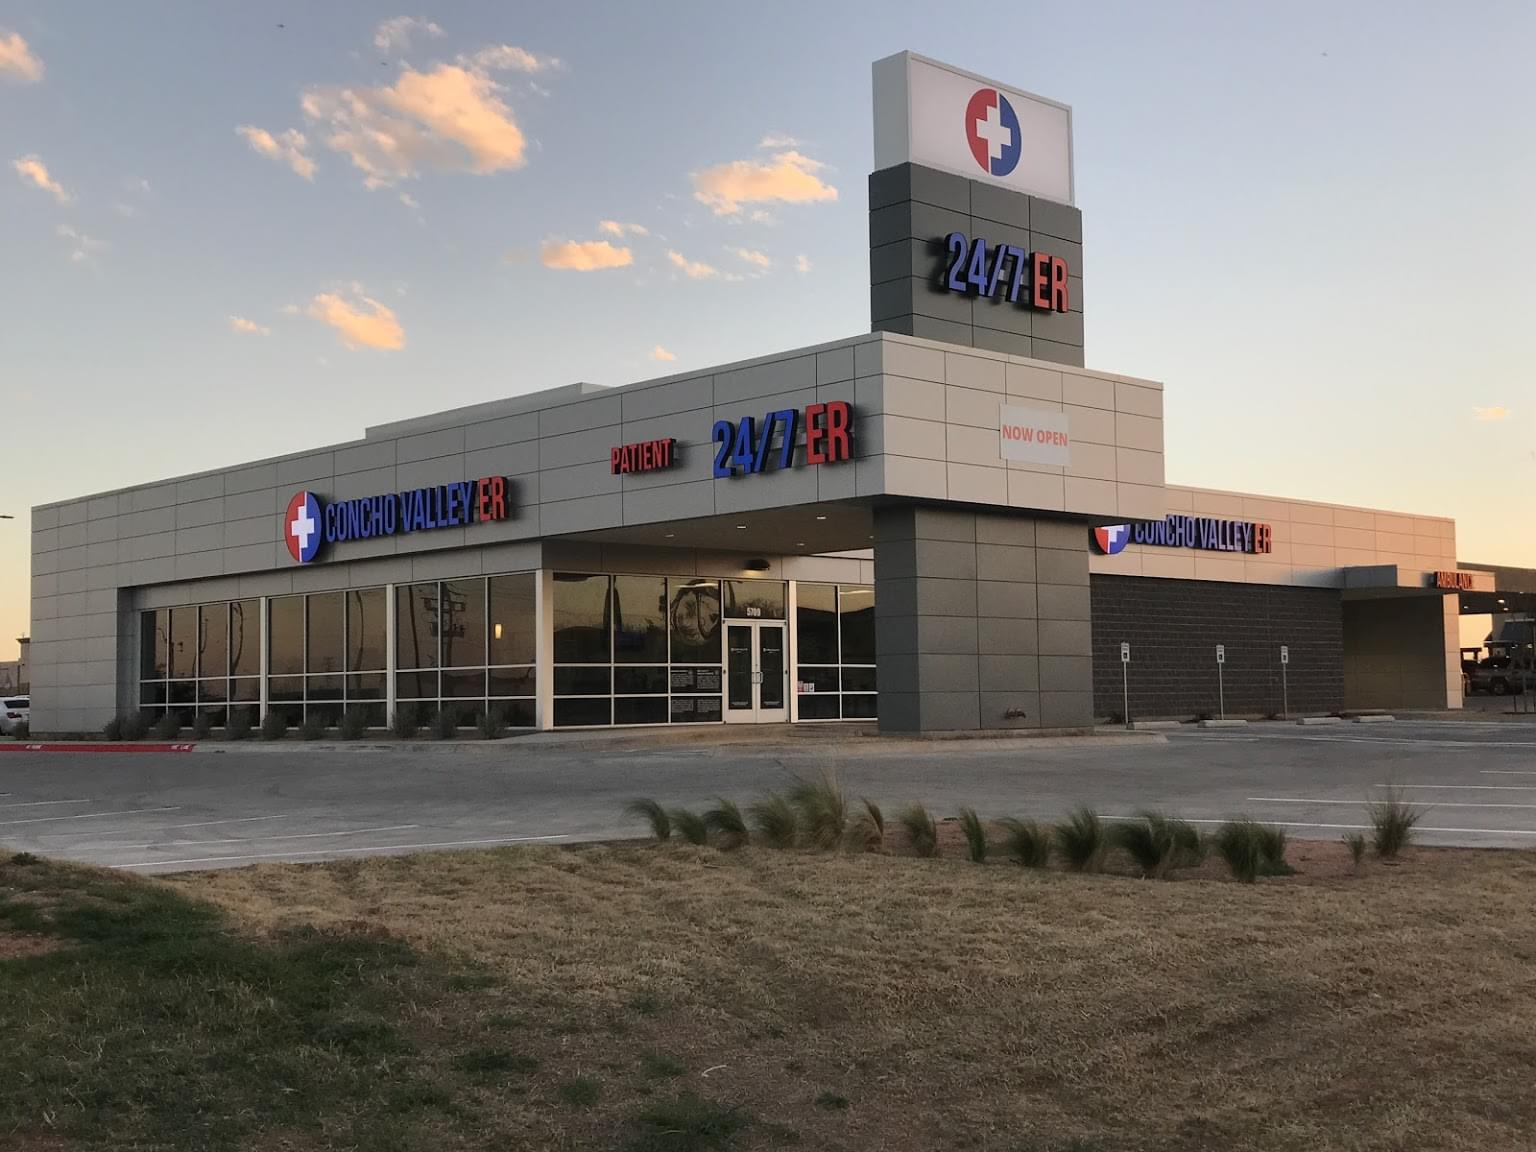 Concho Valley ER – San Angelo, TX – See-Inside 24/7 Emergency Center